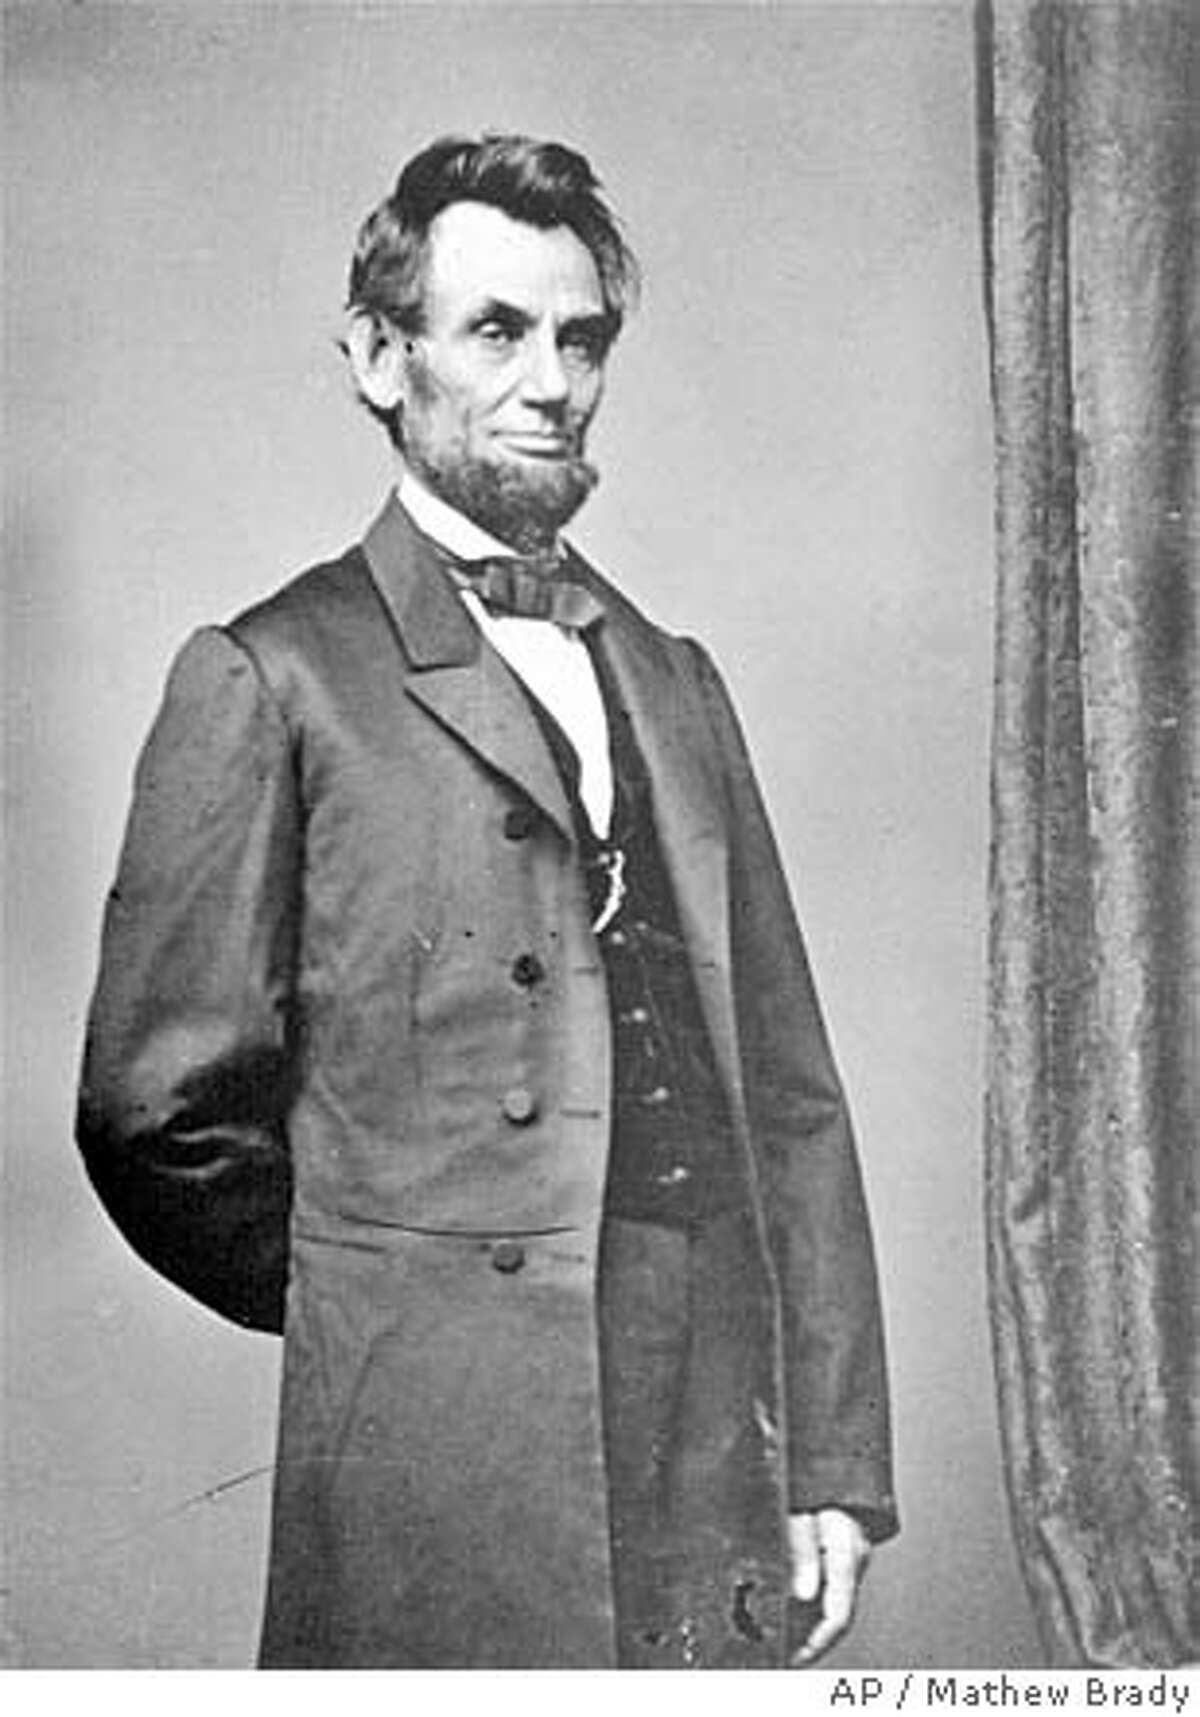 ** FILE ** President Abraham Lincoln poses for a portrait in this undated file photo. Lincoln has been labeled the nation's greatest president by the American people, according to a recent poll. (AP Photo/Mathew Brady) Ran on: 02-21-2005 Jason Bezis displays evidence that the name of the holiday in question is, well, questionable. Ran on: 02-21-2005 Jason Bezis displays evidence that the name of the holiday in question is, well, questionable. Ran on: 02-21-2005 Jason Bezis displays evidence that the name of the holiday in question is, well, questionable. UNDATED BLACK AND WHITE FILE PHOTO